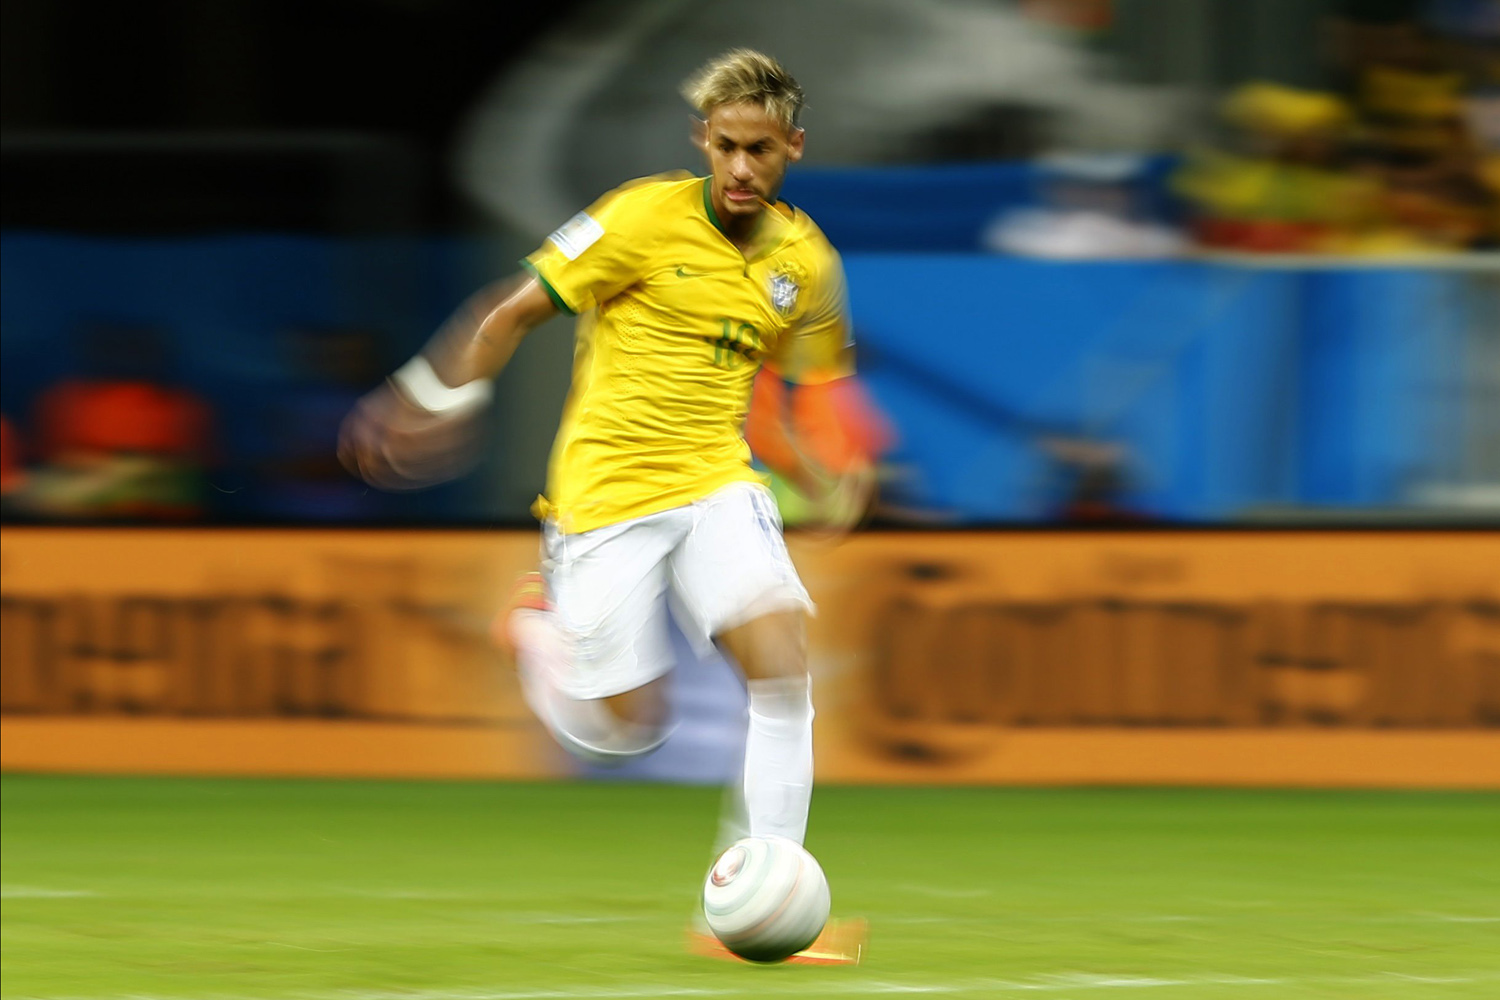 Jun. 23, 2014. Brazil's Neymar dribbles the ball during the 2014 World Cup Group A soccer match between Cameroon and Brazil at the Brasilia national stadium in Brasilia.